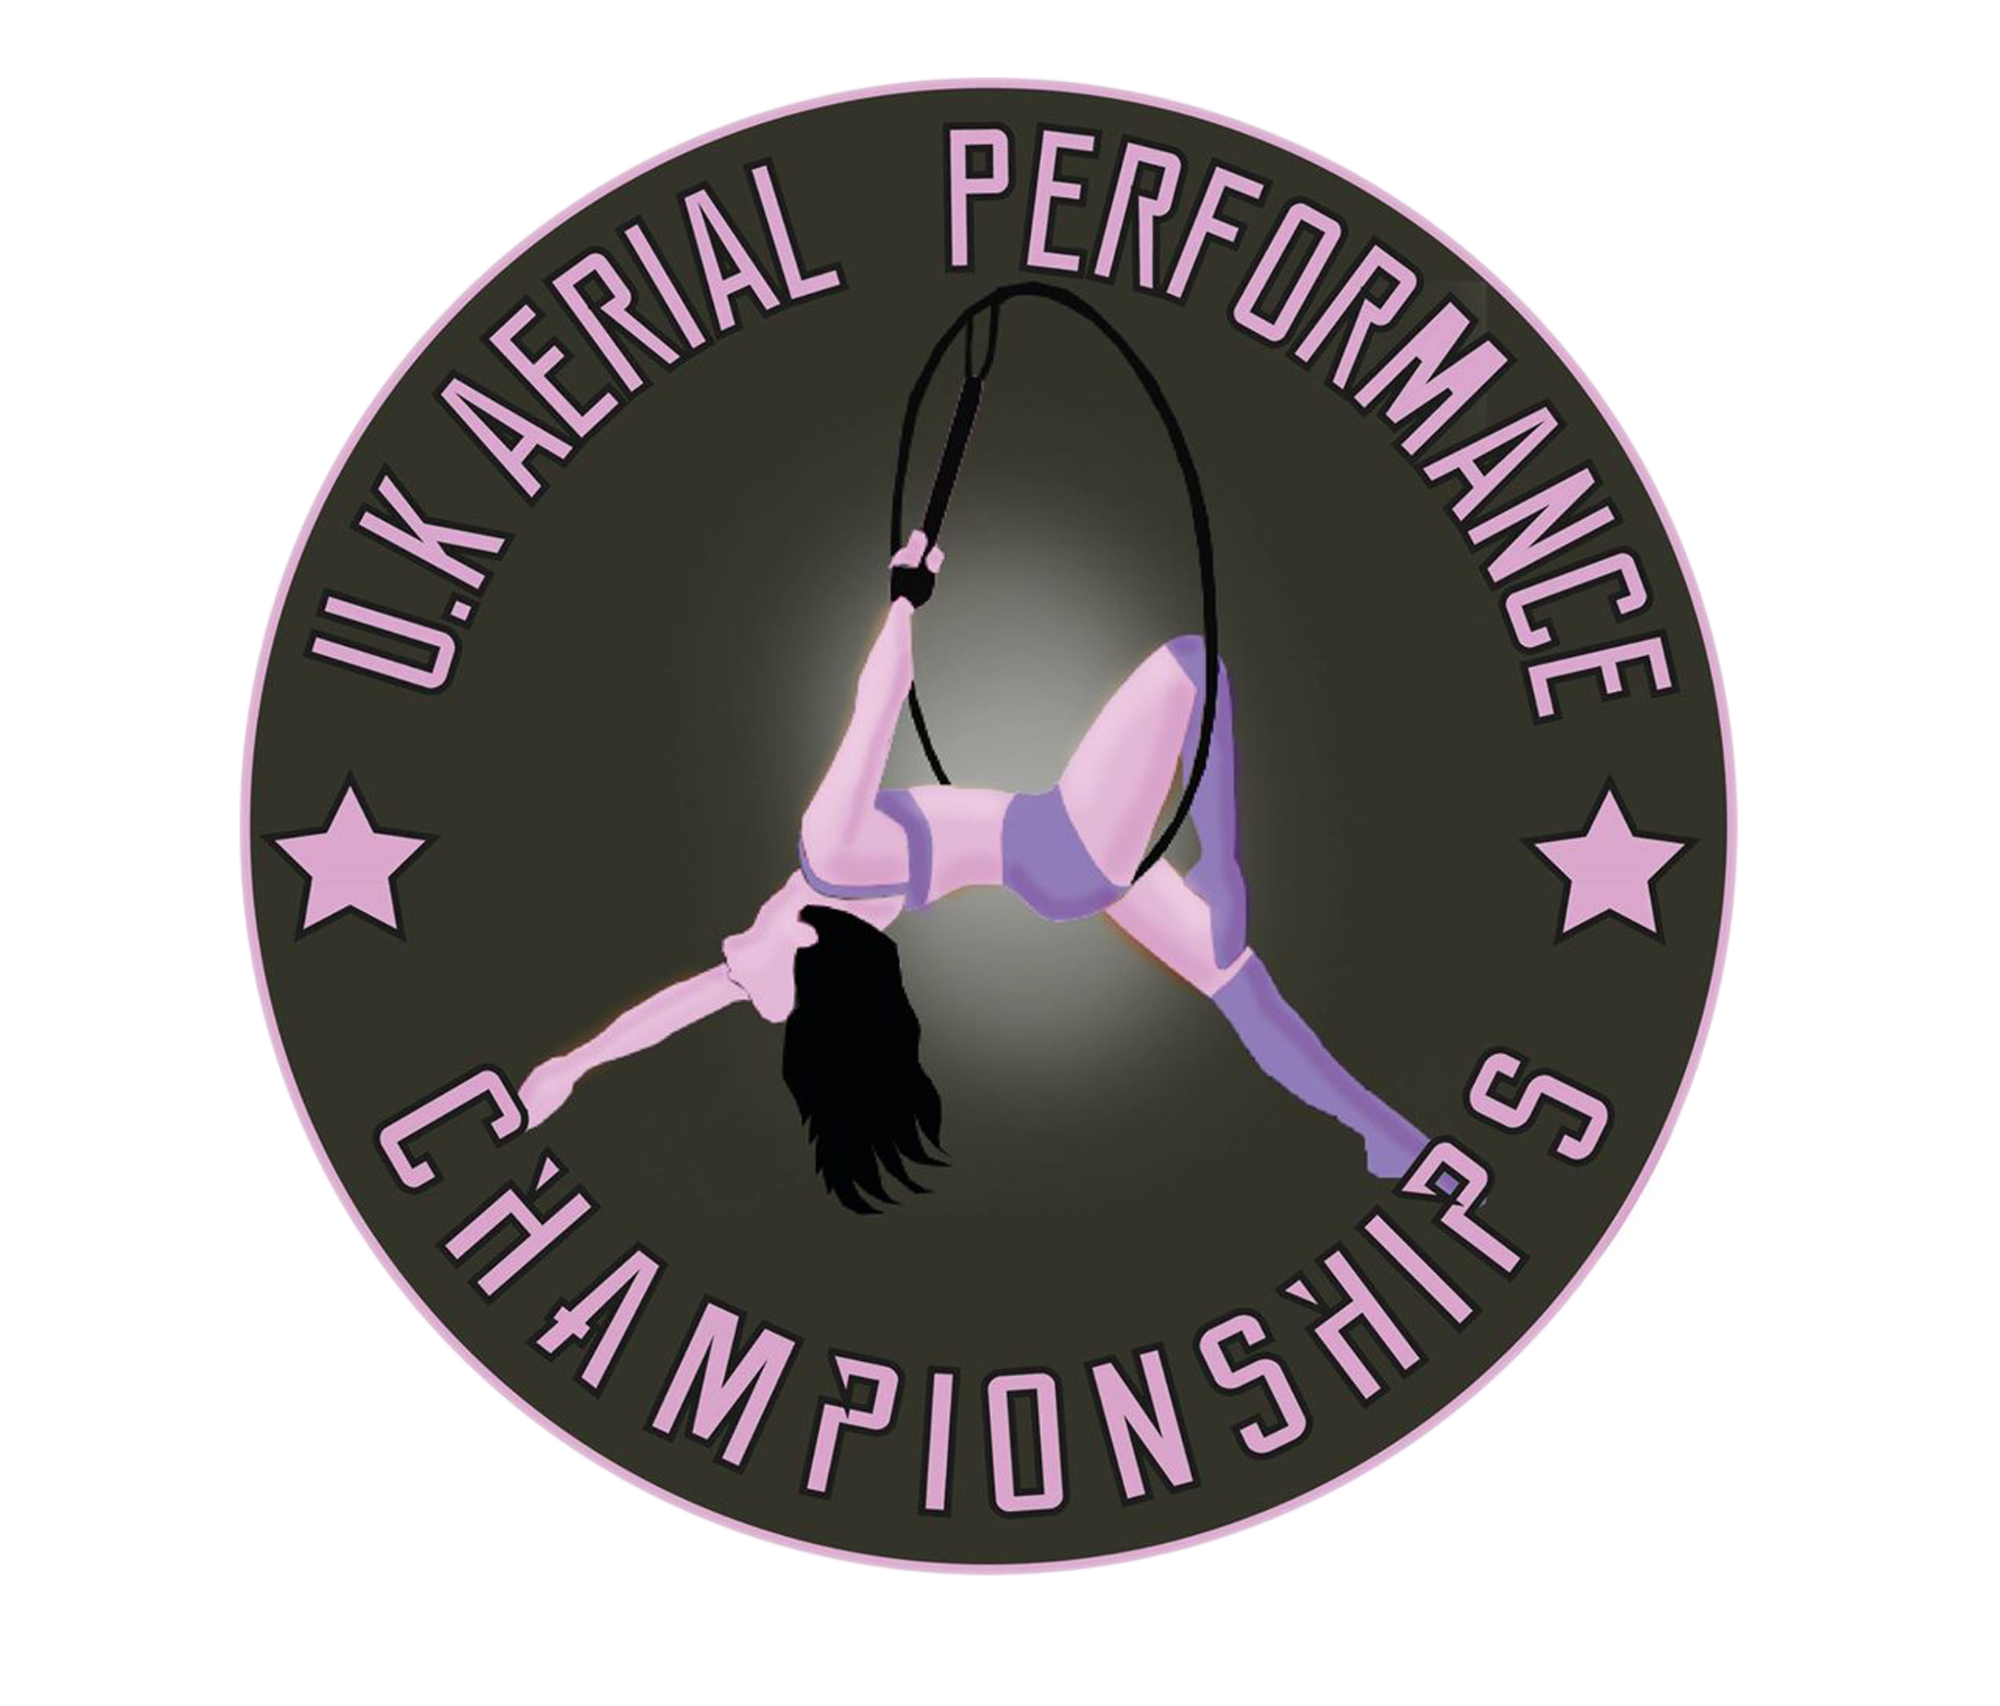 UK Aerial performance championships